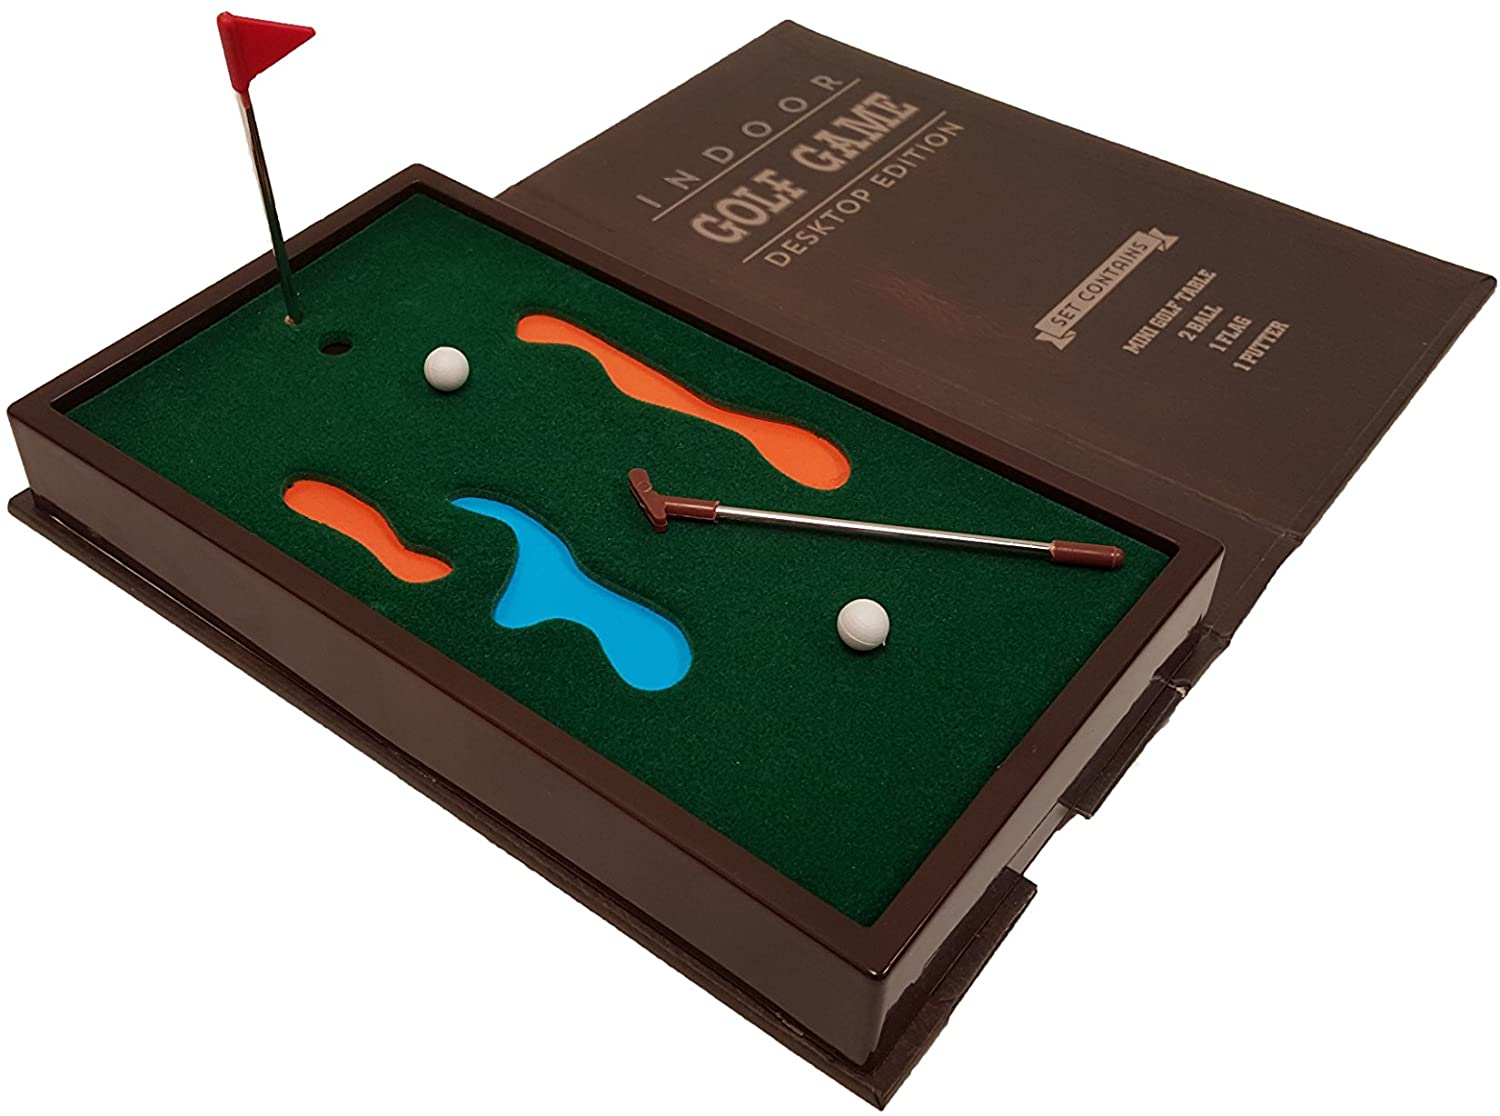 A Fun, Inexpensive Golf-Related Employee Gift Idea